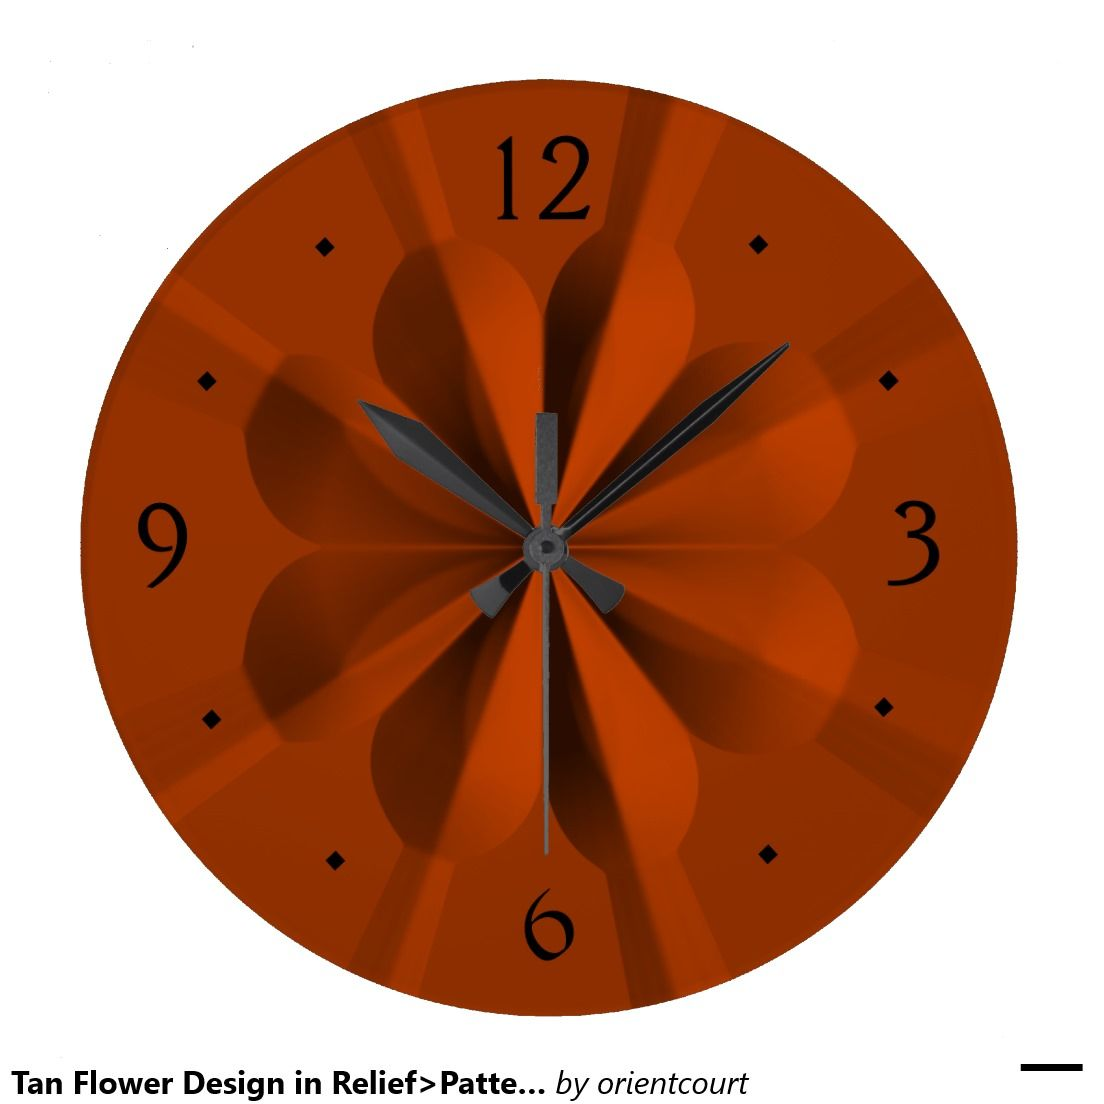 Tan Flower Design in Relief>Patterned Wall Clocks